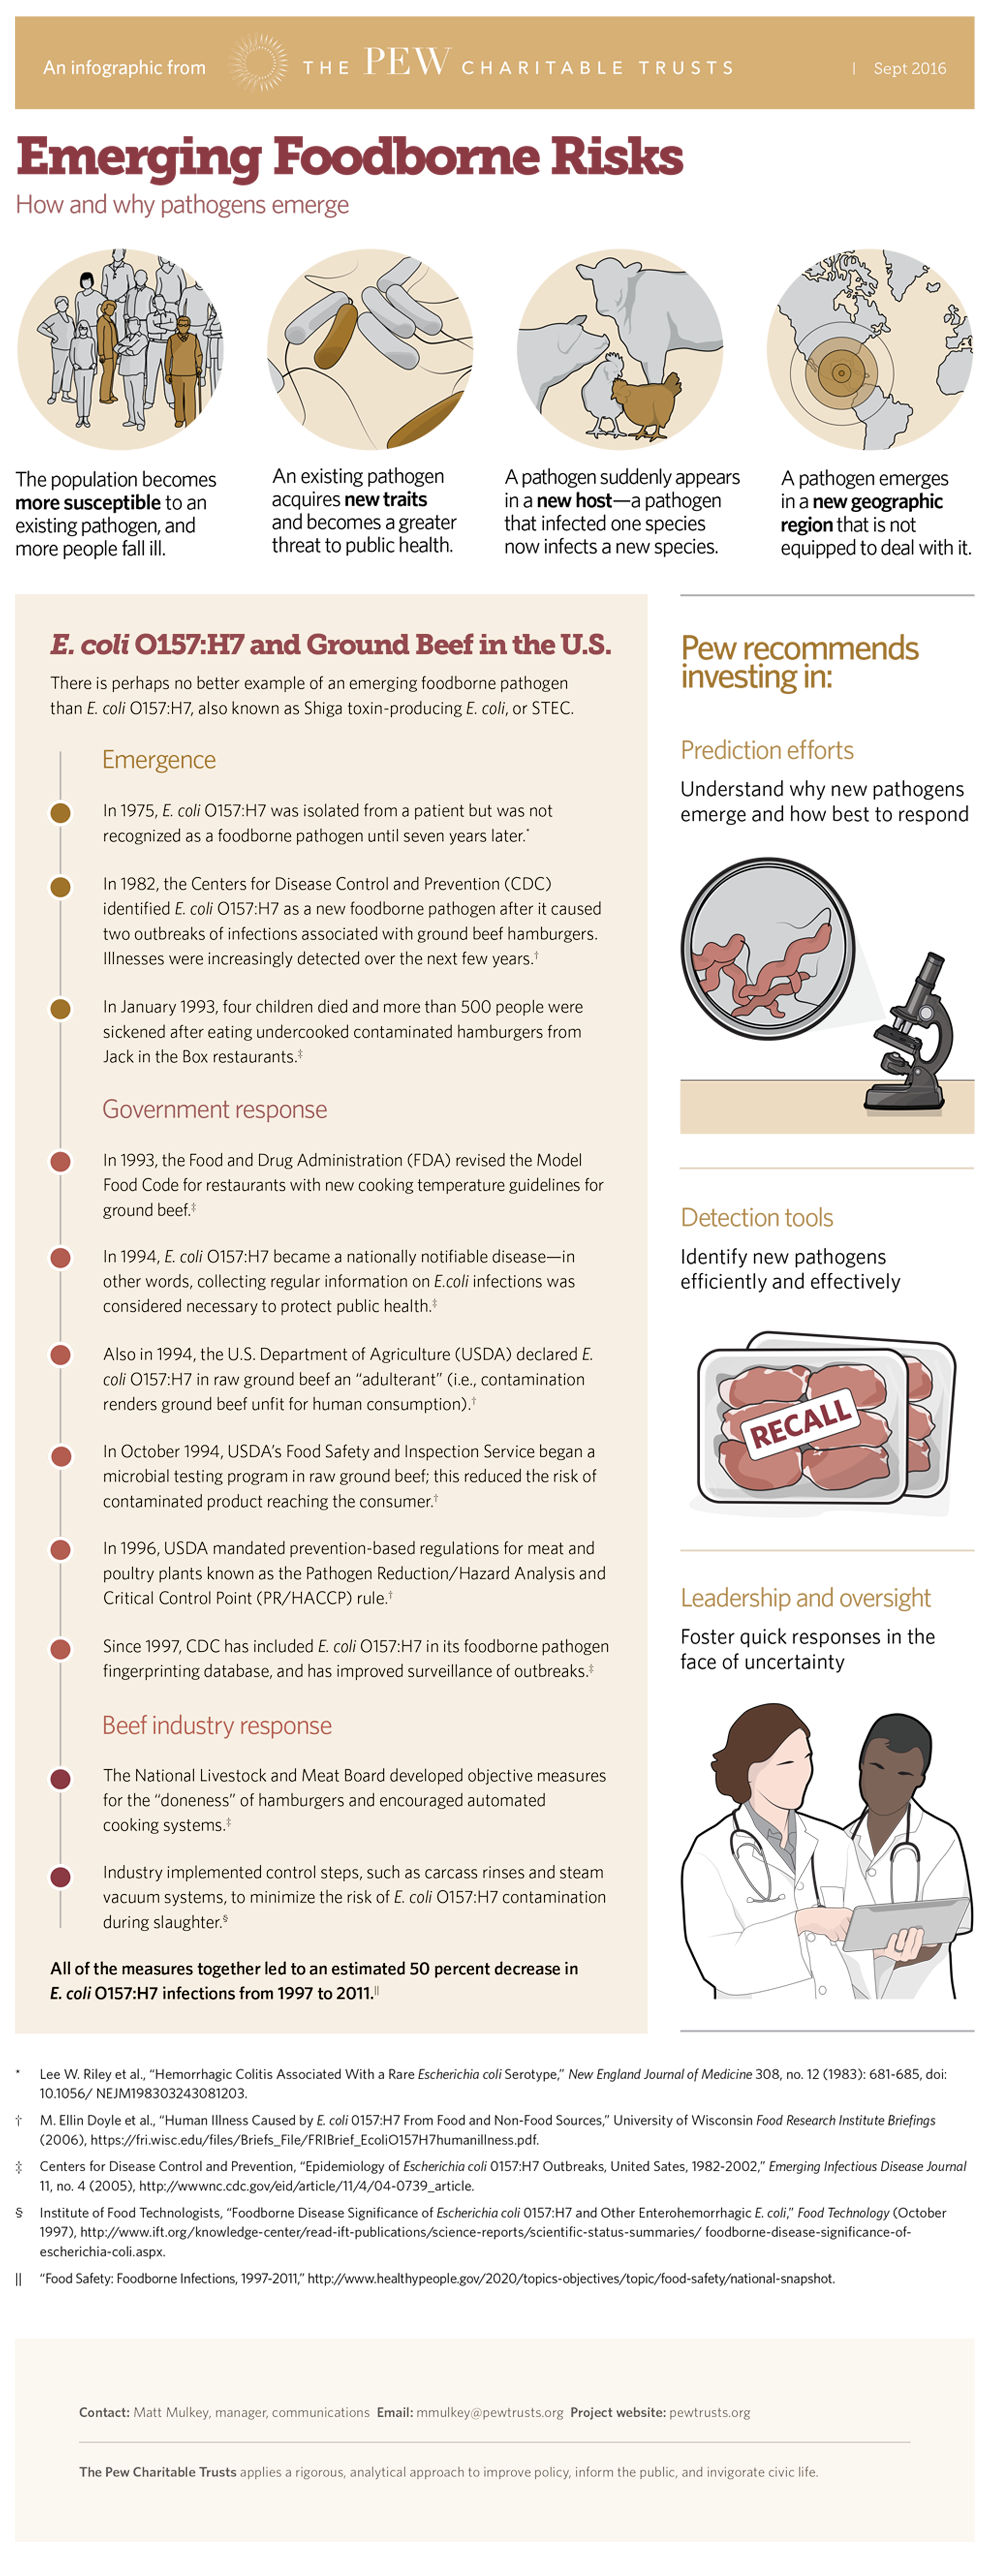 Foodborne risks infographic